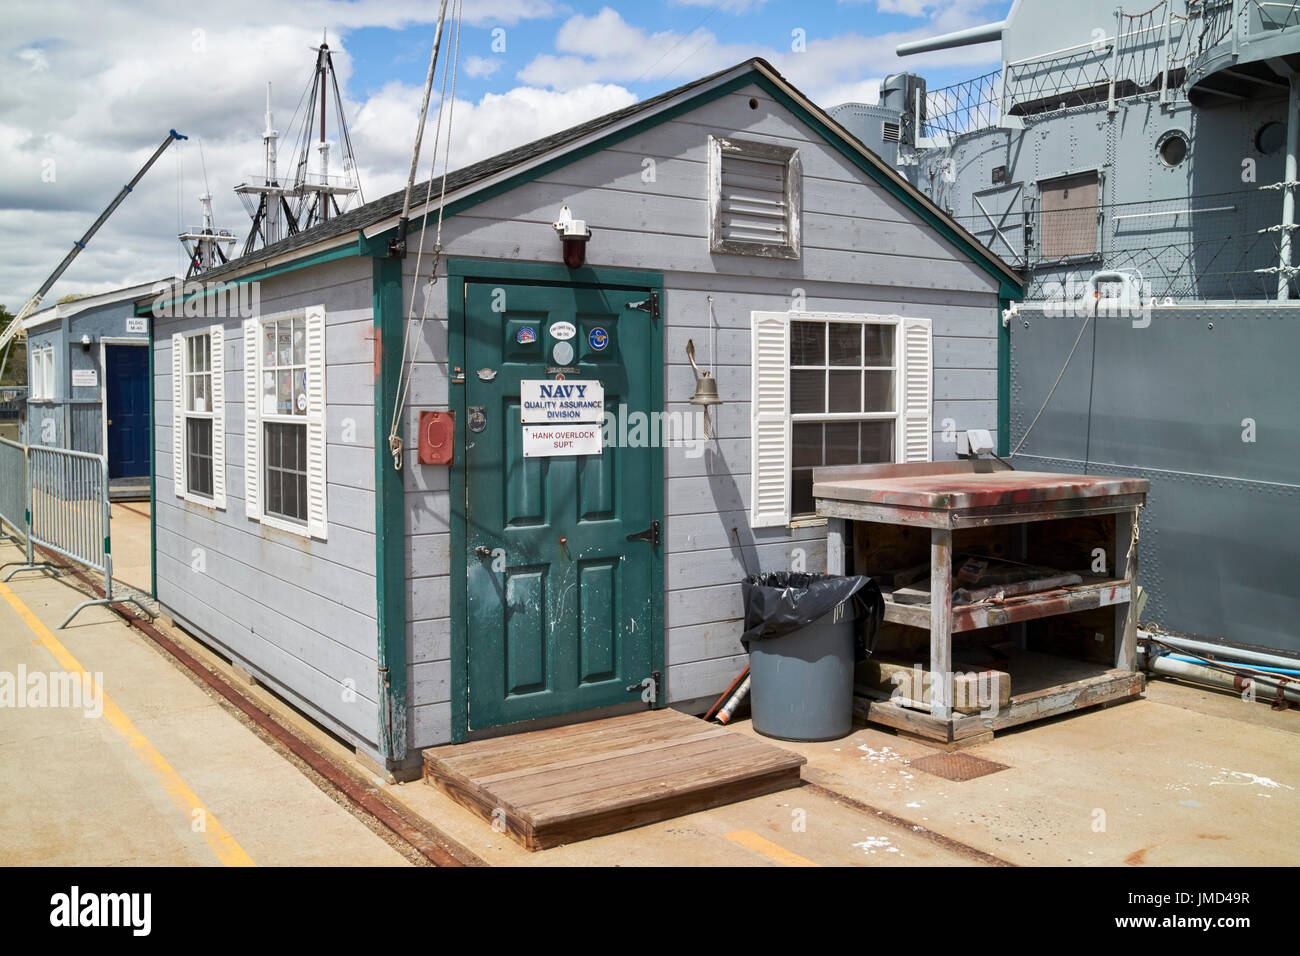 small wooden navy quality assurance division hut on quayside Charlestown navy yard Boston USA Stock Photo